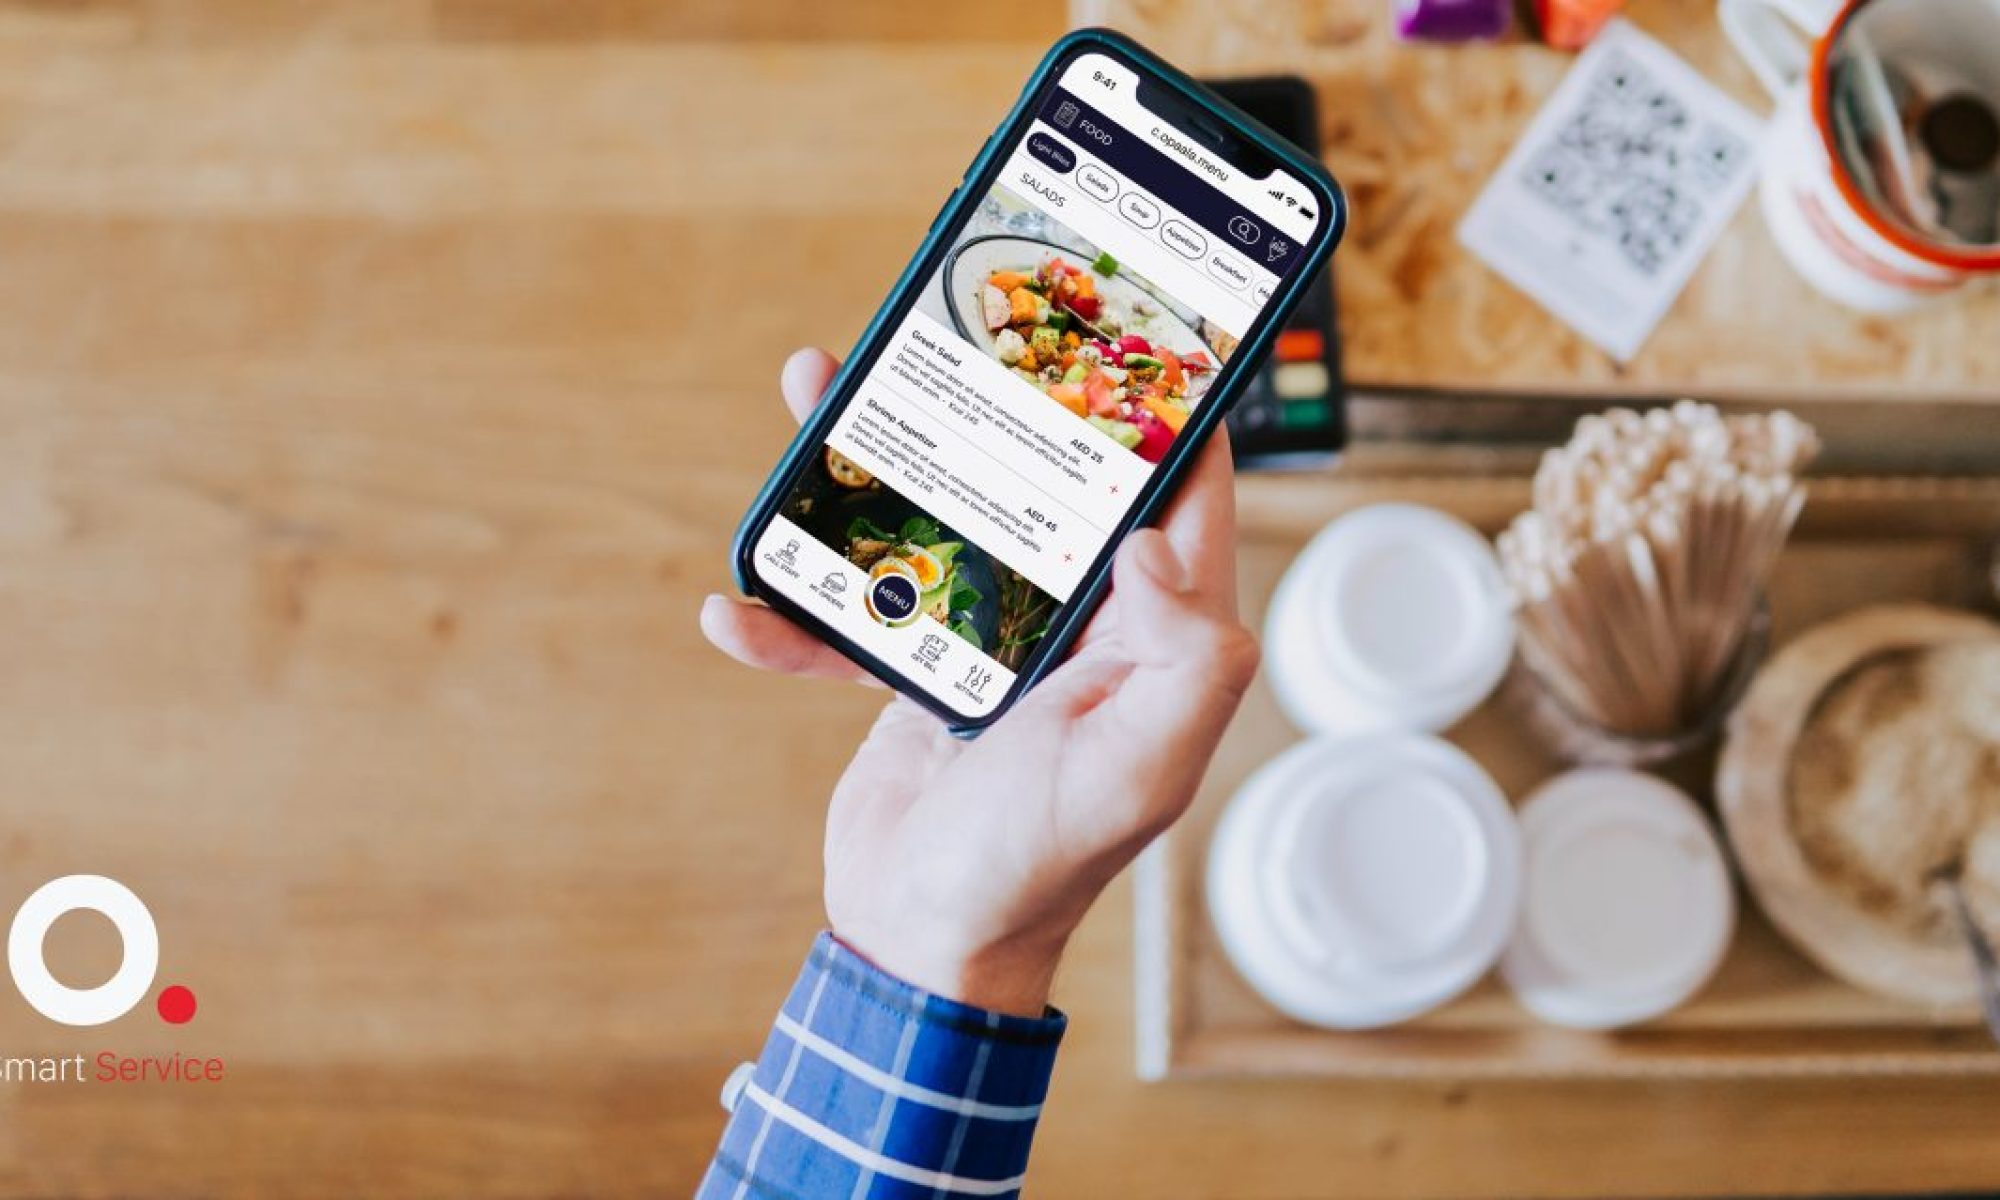 <div>Hospitality Tech Startup, Opaala, Becomes A Key Solution to Boosting F&B Venue Sales Through Their Cutting-Edge Smart Service</div>